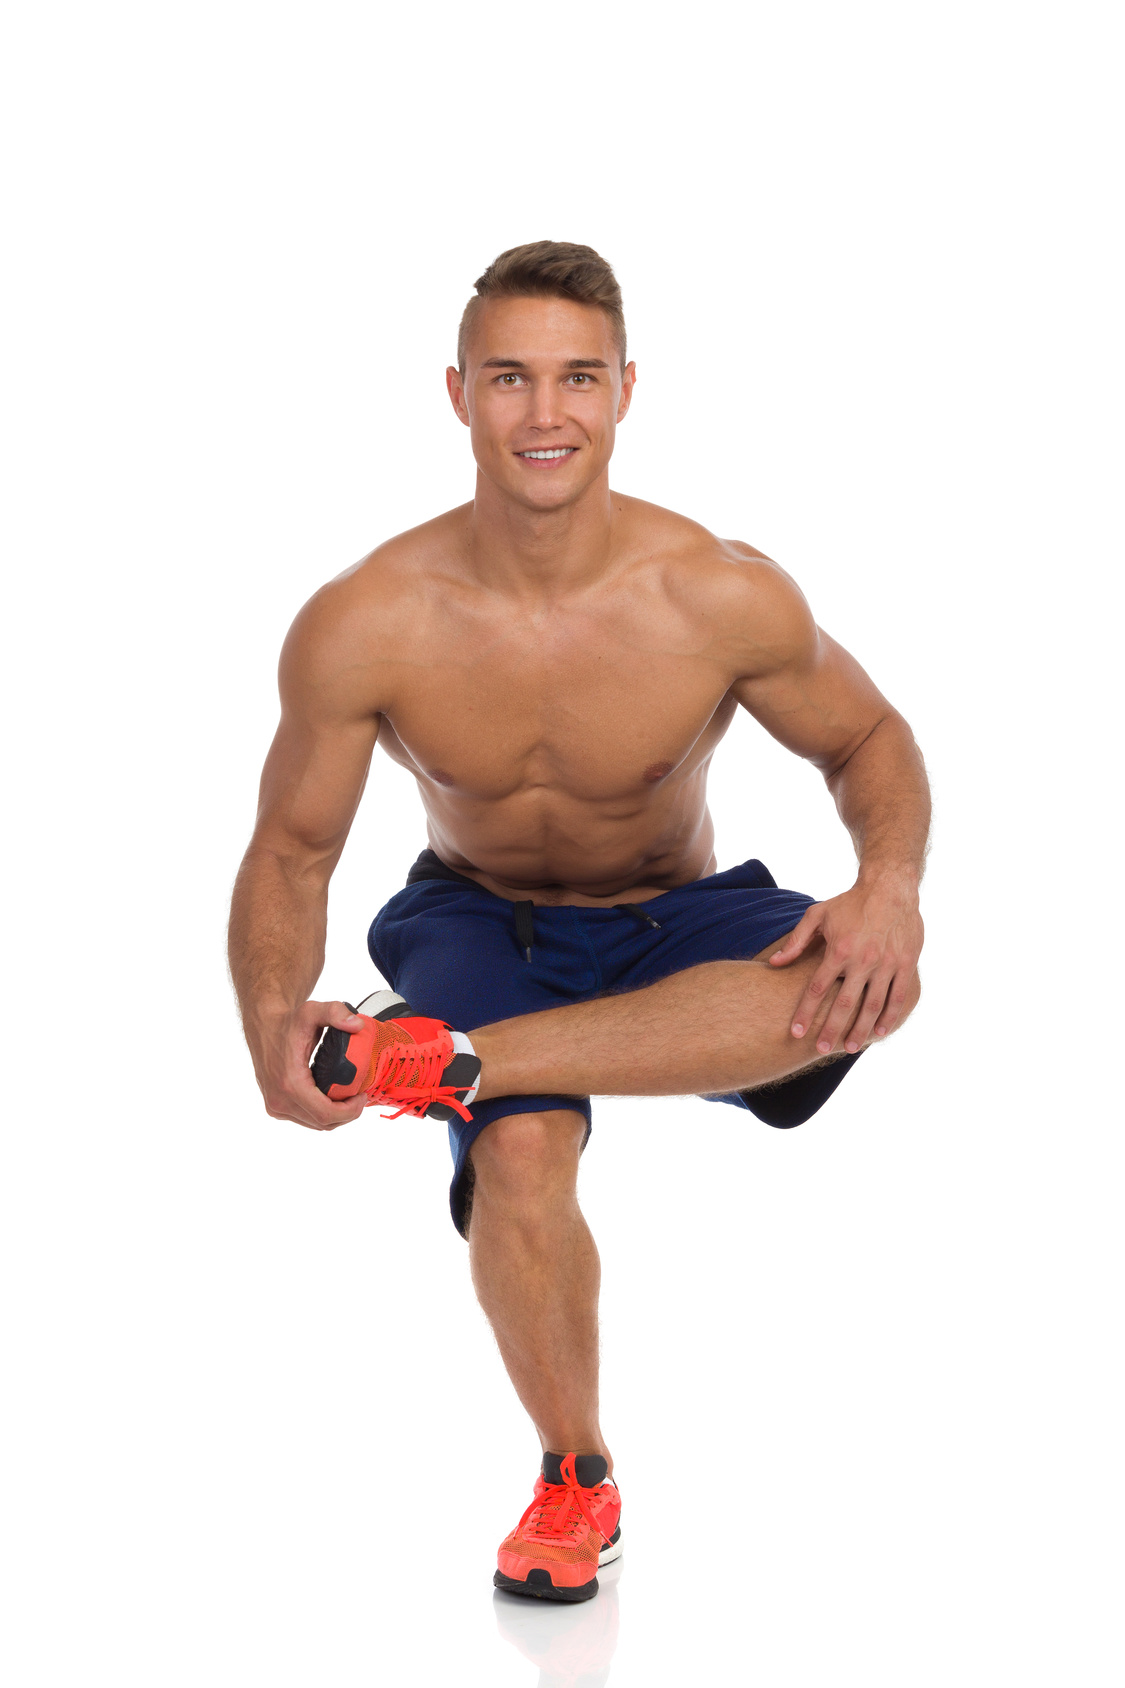 Young fit man in blue shorts and orange sneakers crouching on one leg, holding his leg on other leg knee and stretching gluteus maximus. Front view. Full length studio shot isolated on white.